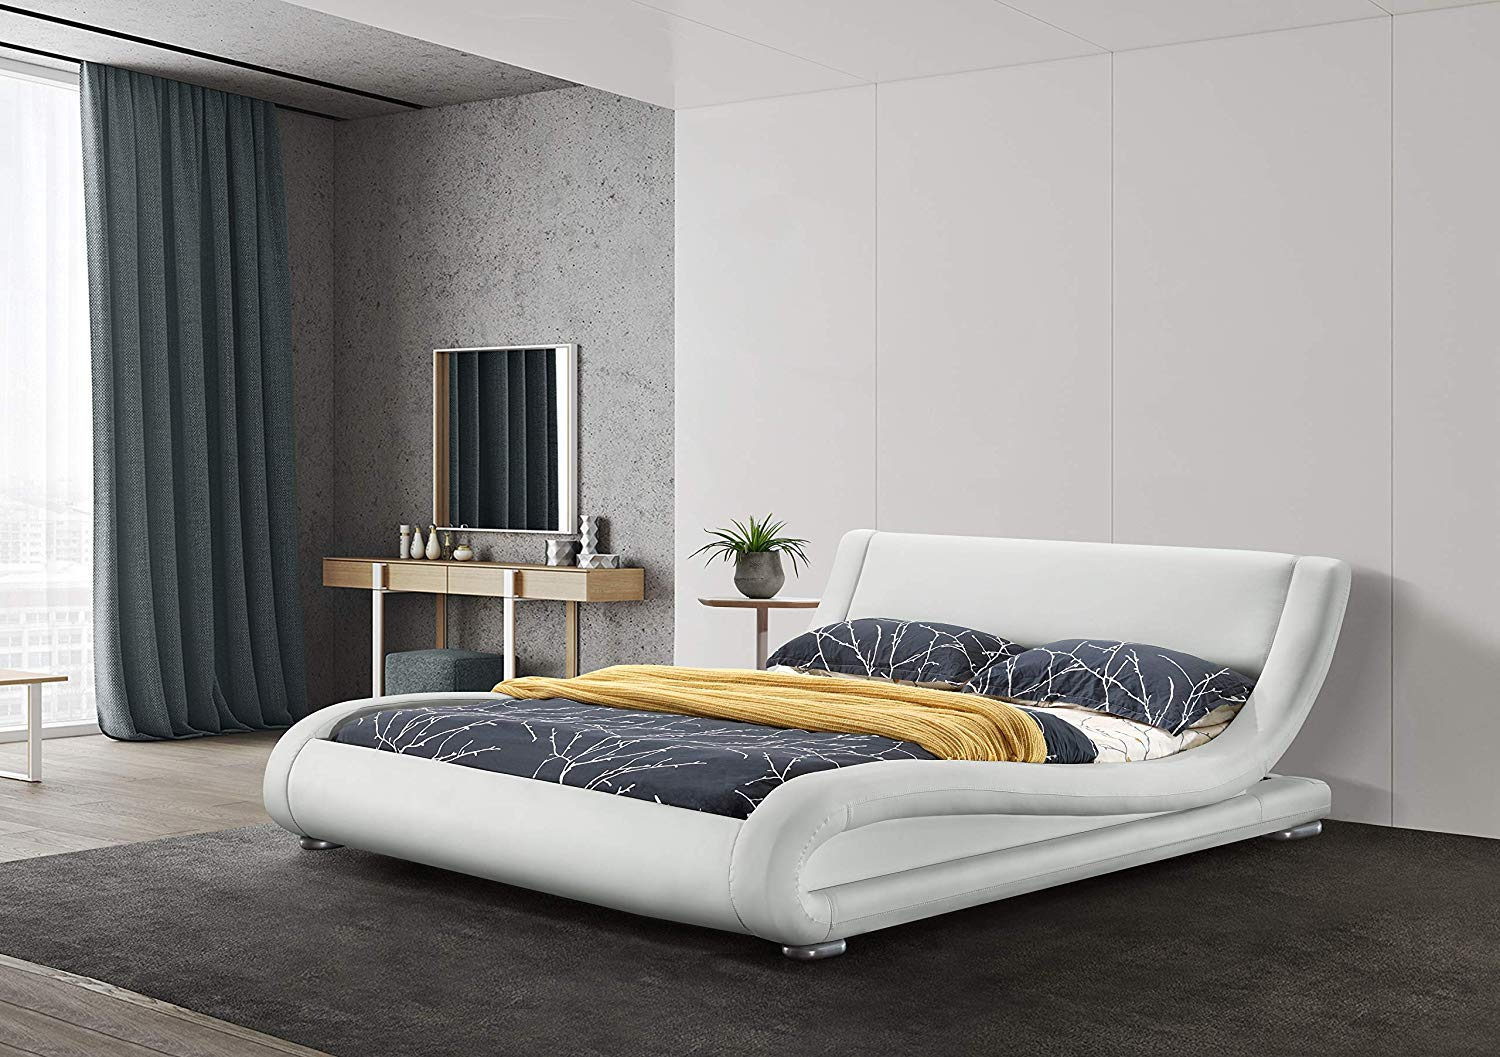 Is A Platform Bed Comfortable Best Platform Beds You Will Love At First Sight 2019 Free Shipping